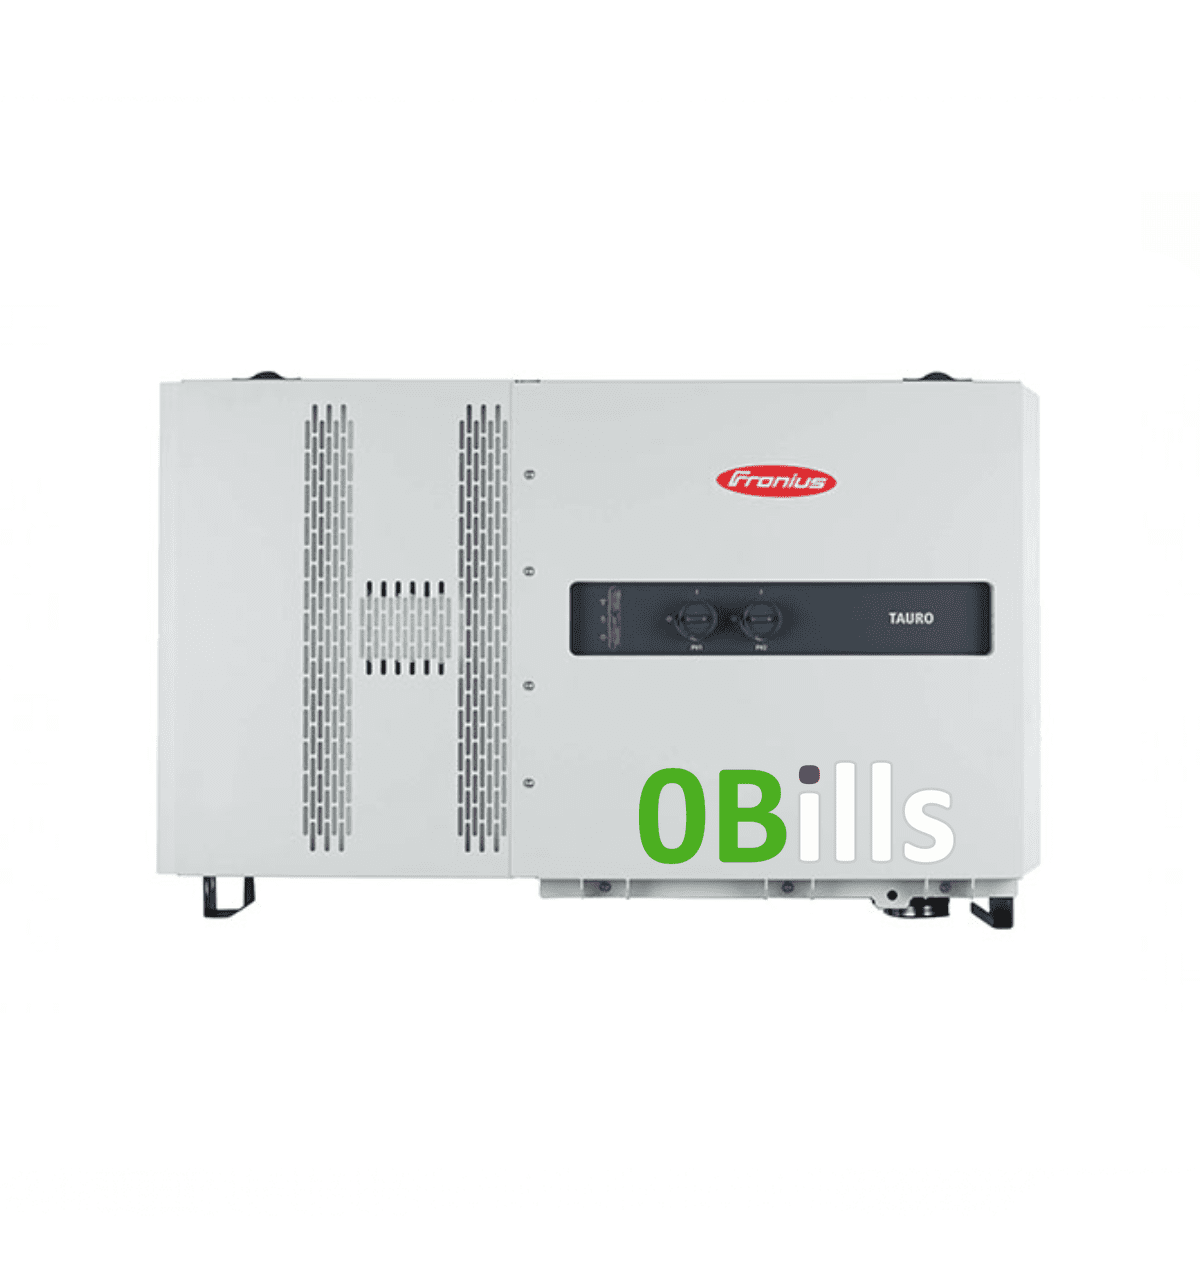 Buy Fronius TAURO ECO 50-3-D 50kW Grid Tie Solar Inverter@ DIY Solar Energy Store for Sale